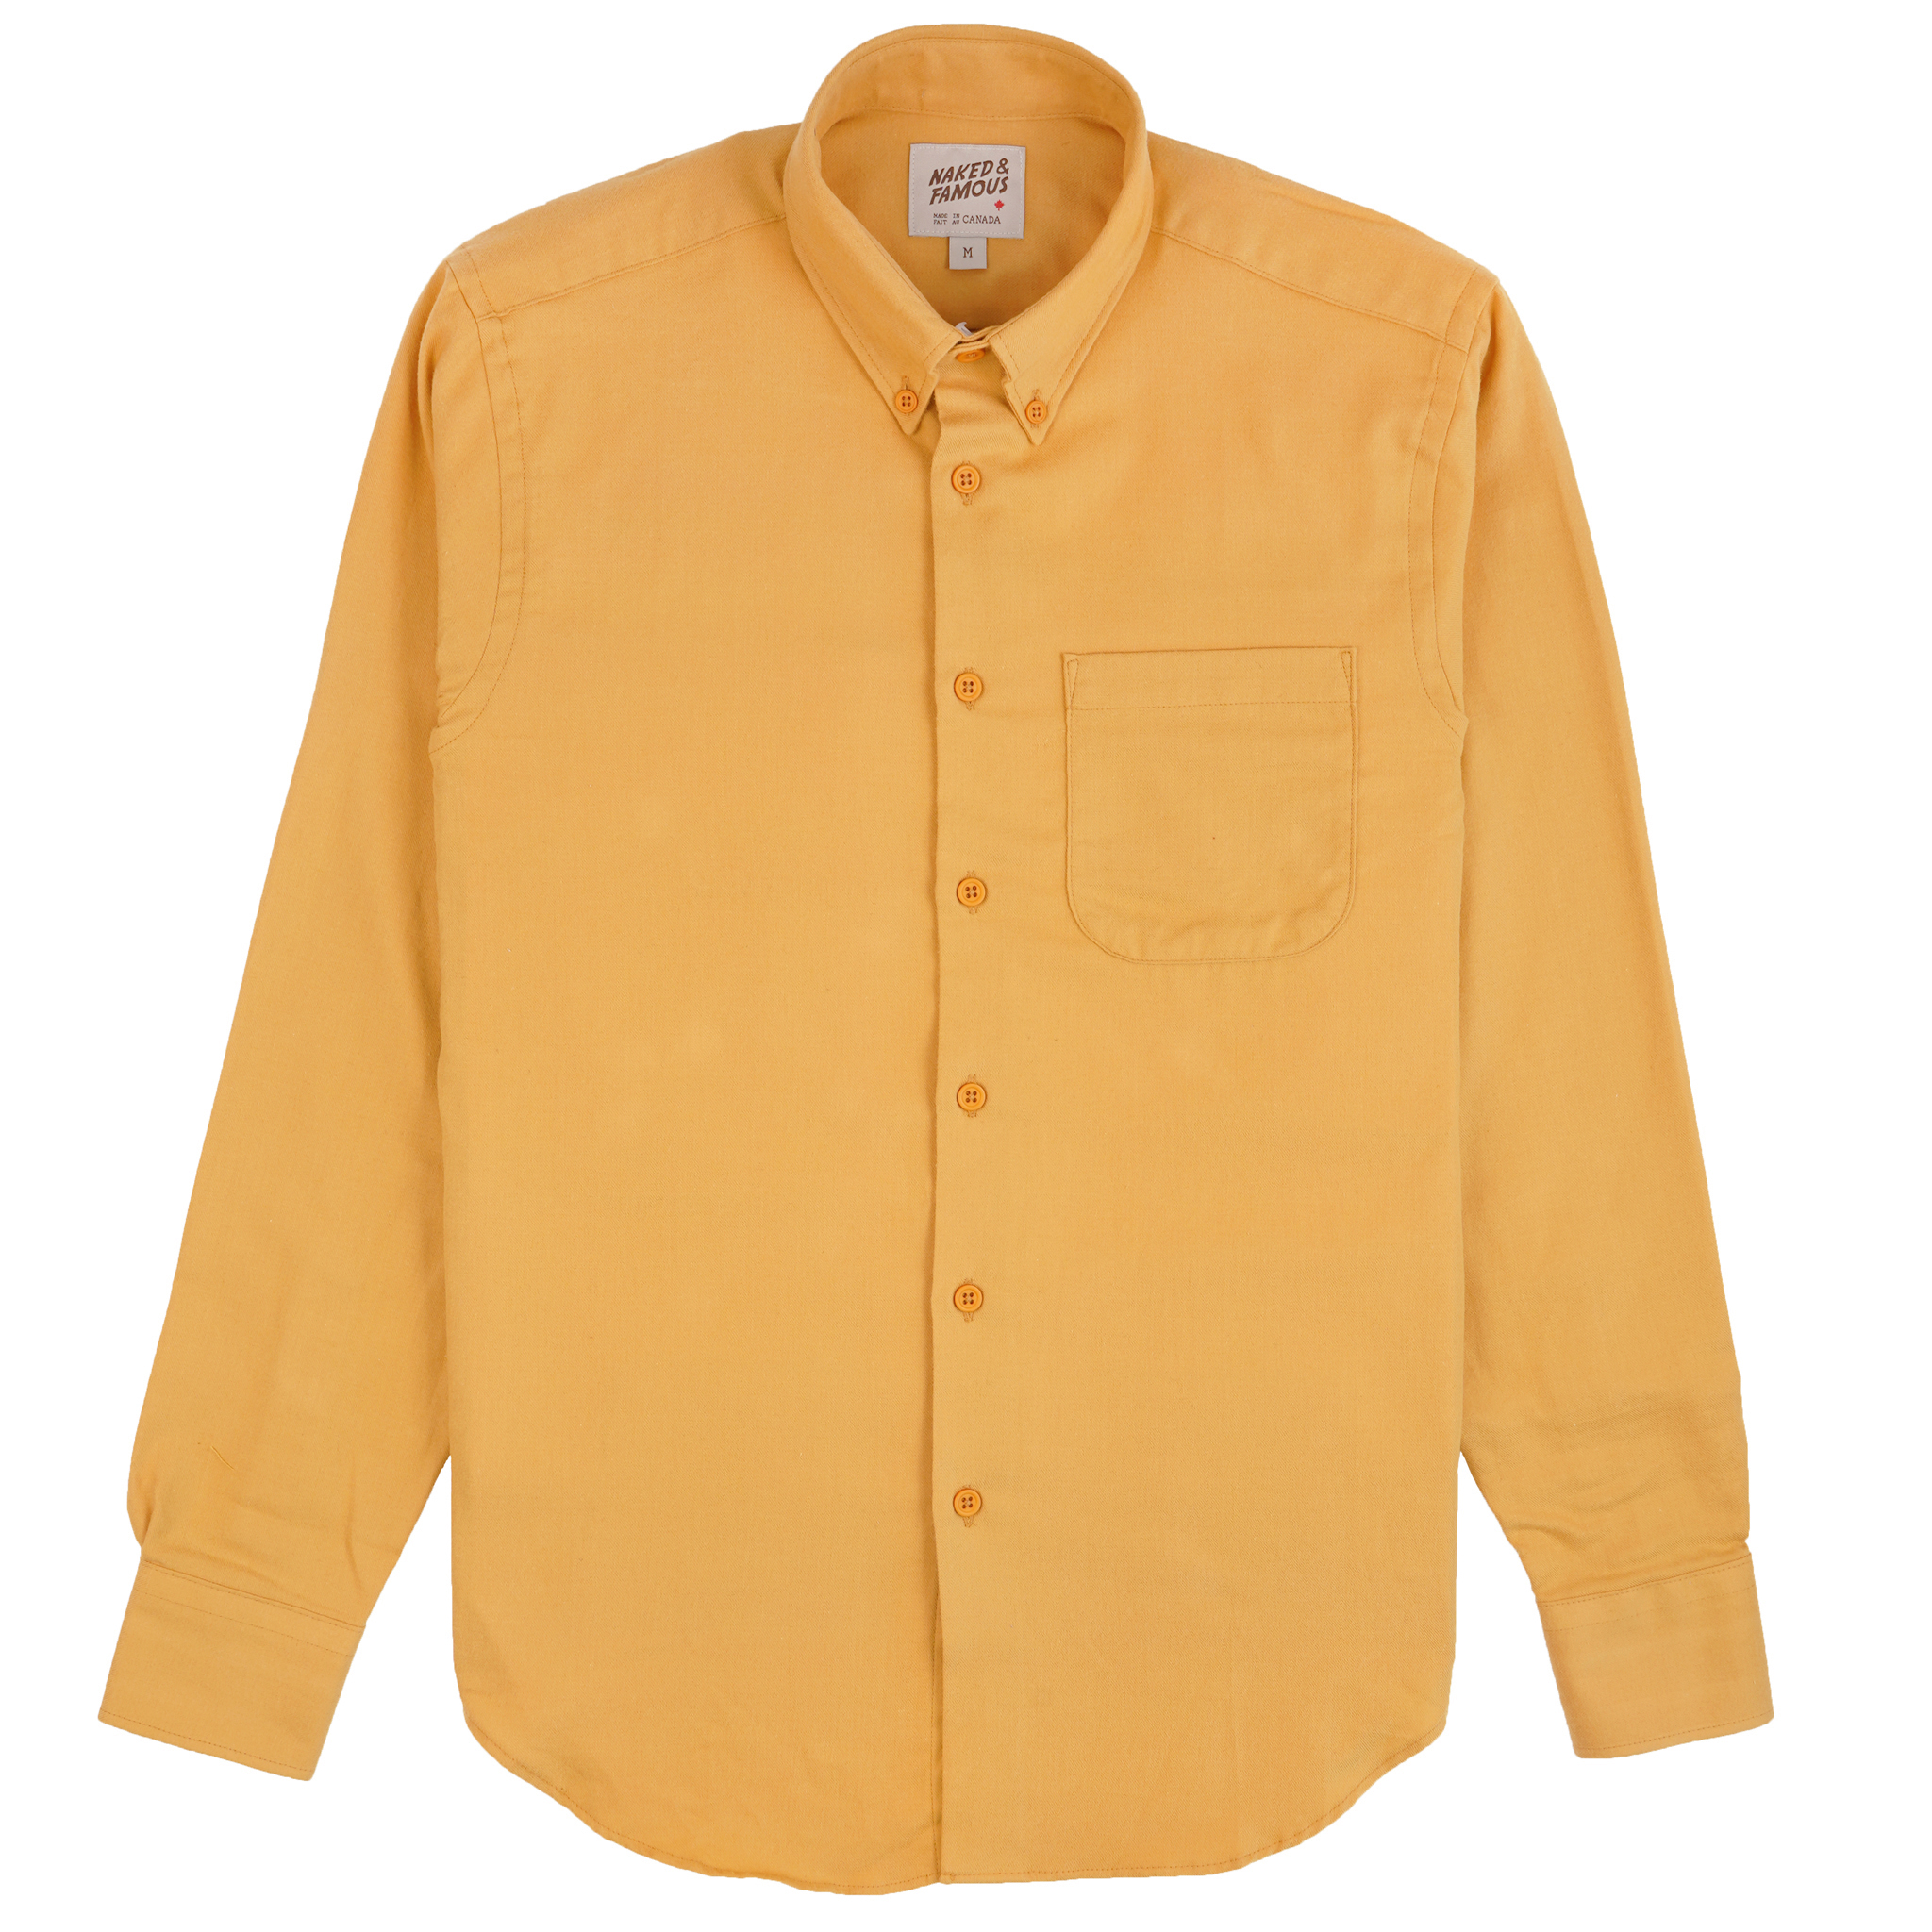 CLassic Flannel - Honey - Easy Shirt